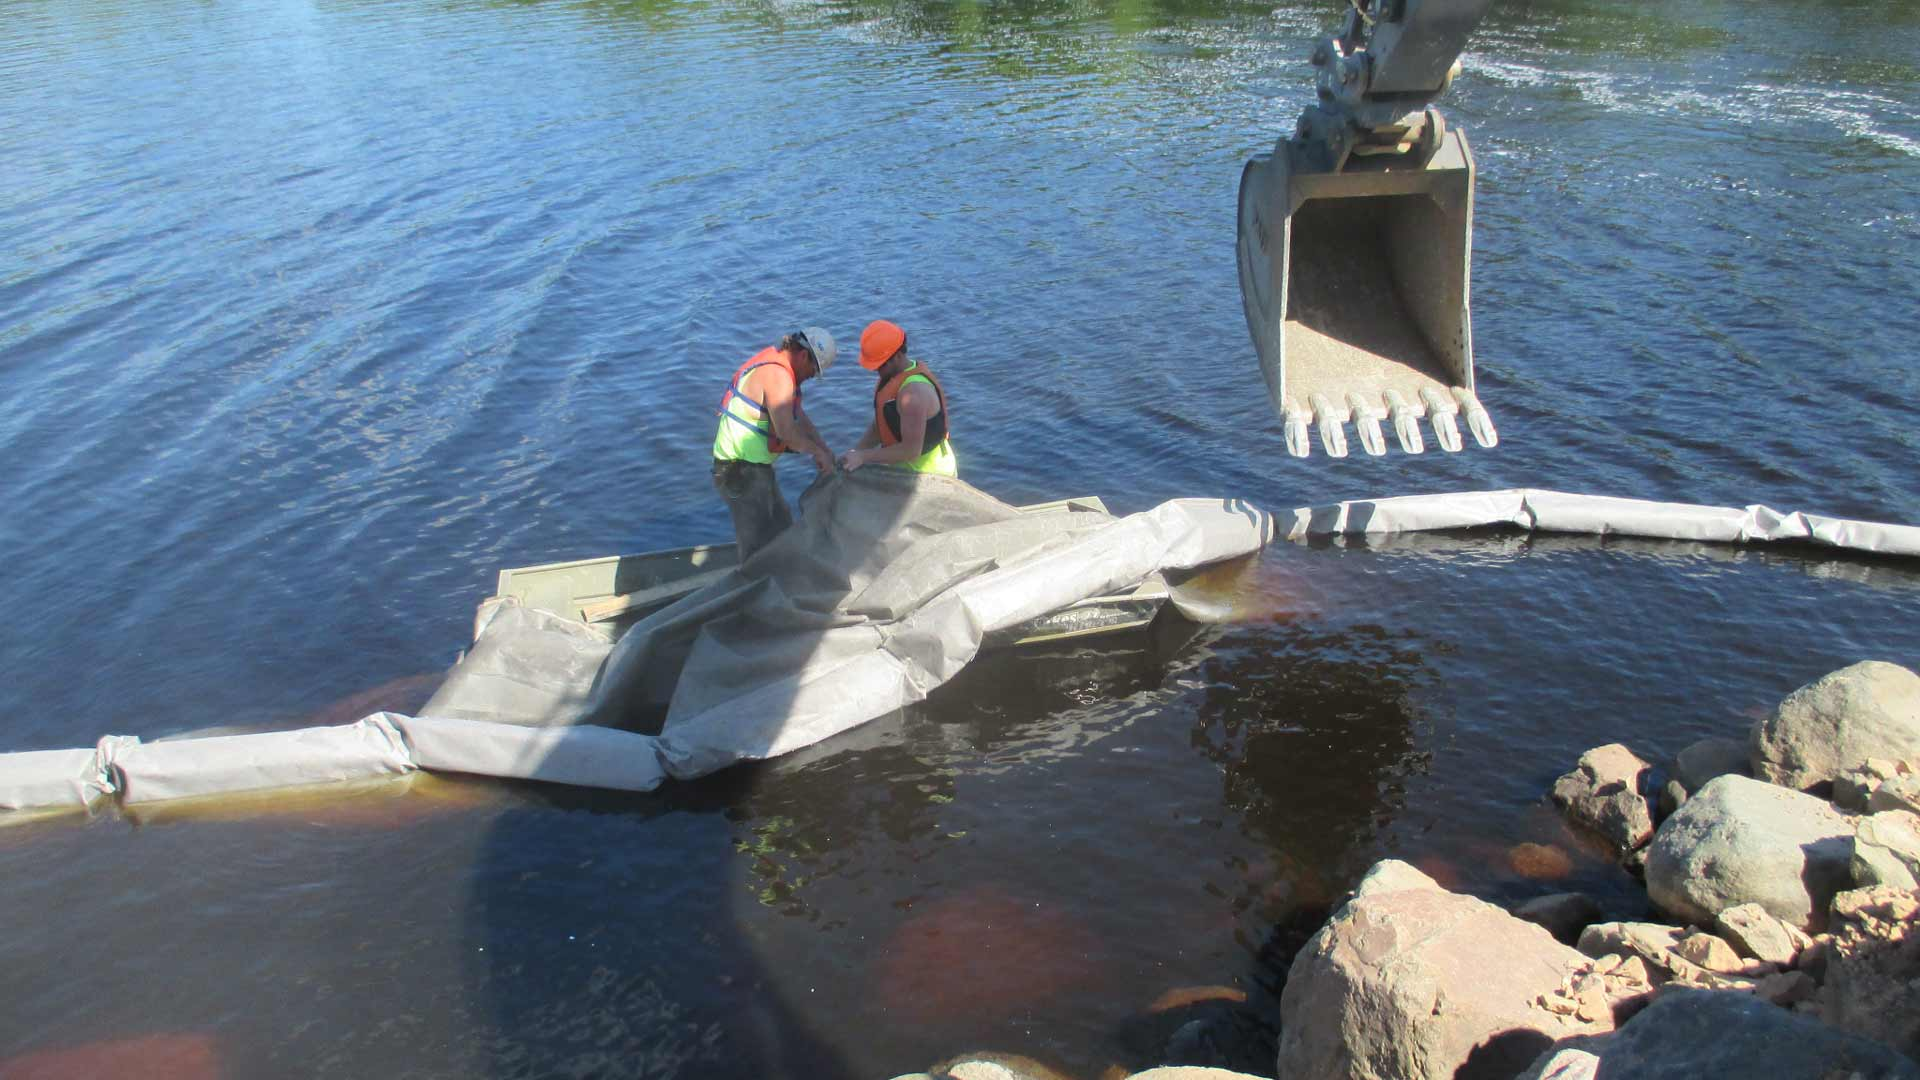 Staab employees working in the water